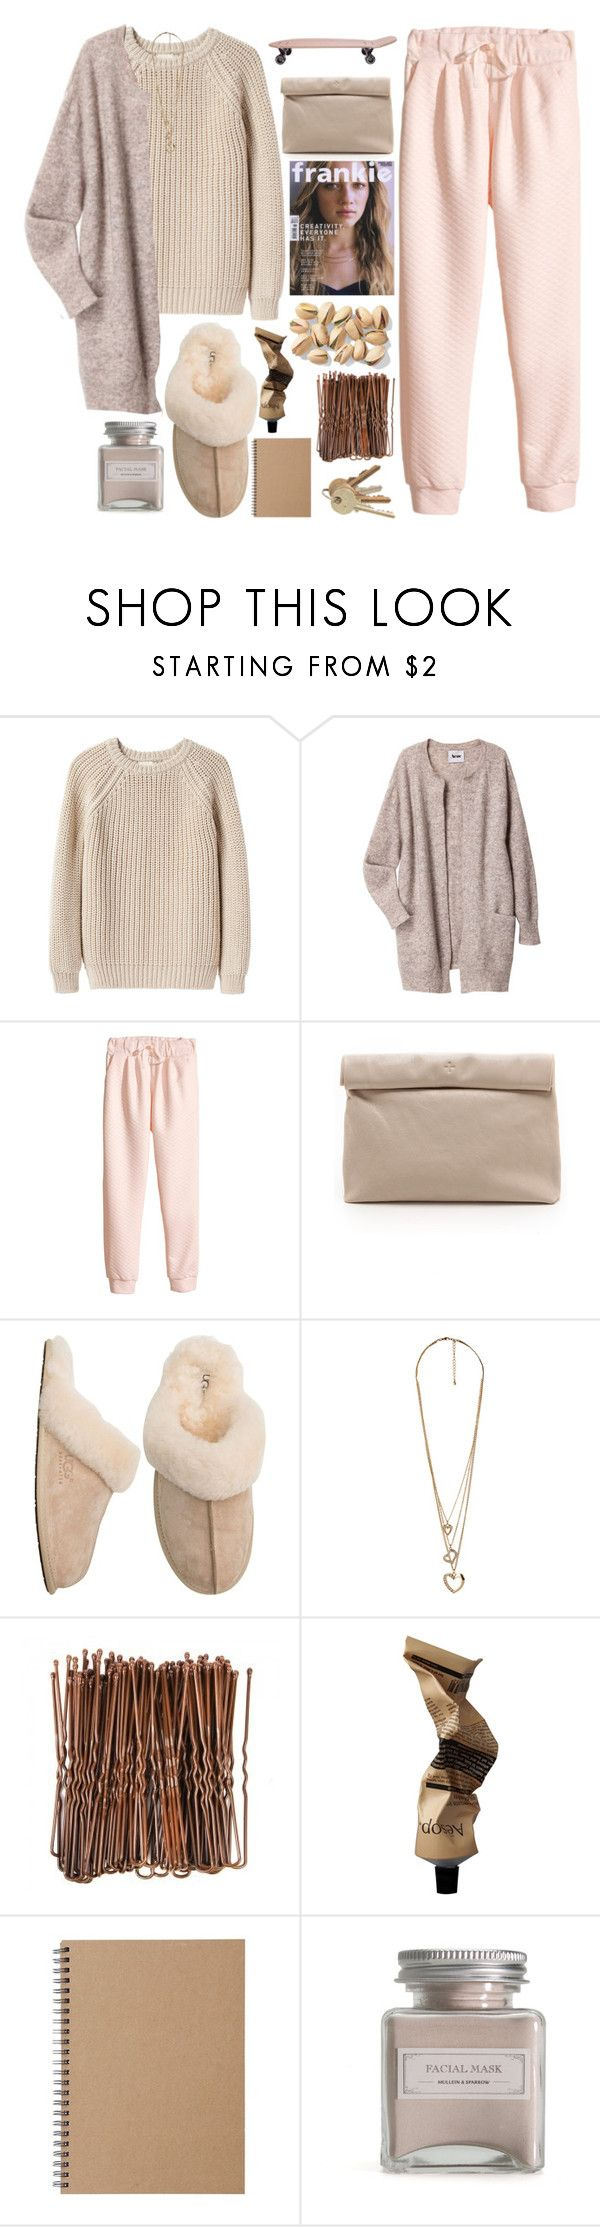 """Smile. Why? Because you can!"" by berina-2000 ❤ liked on Polyvore featuring Giada Forte, Acne Studios, H&M, Marie Turnor, UGG Australia, Forever 21, Aesop, Muji and Mullein & Sparrow"